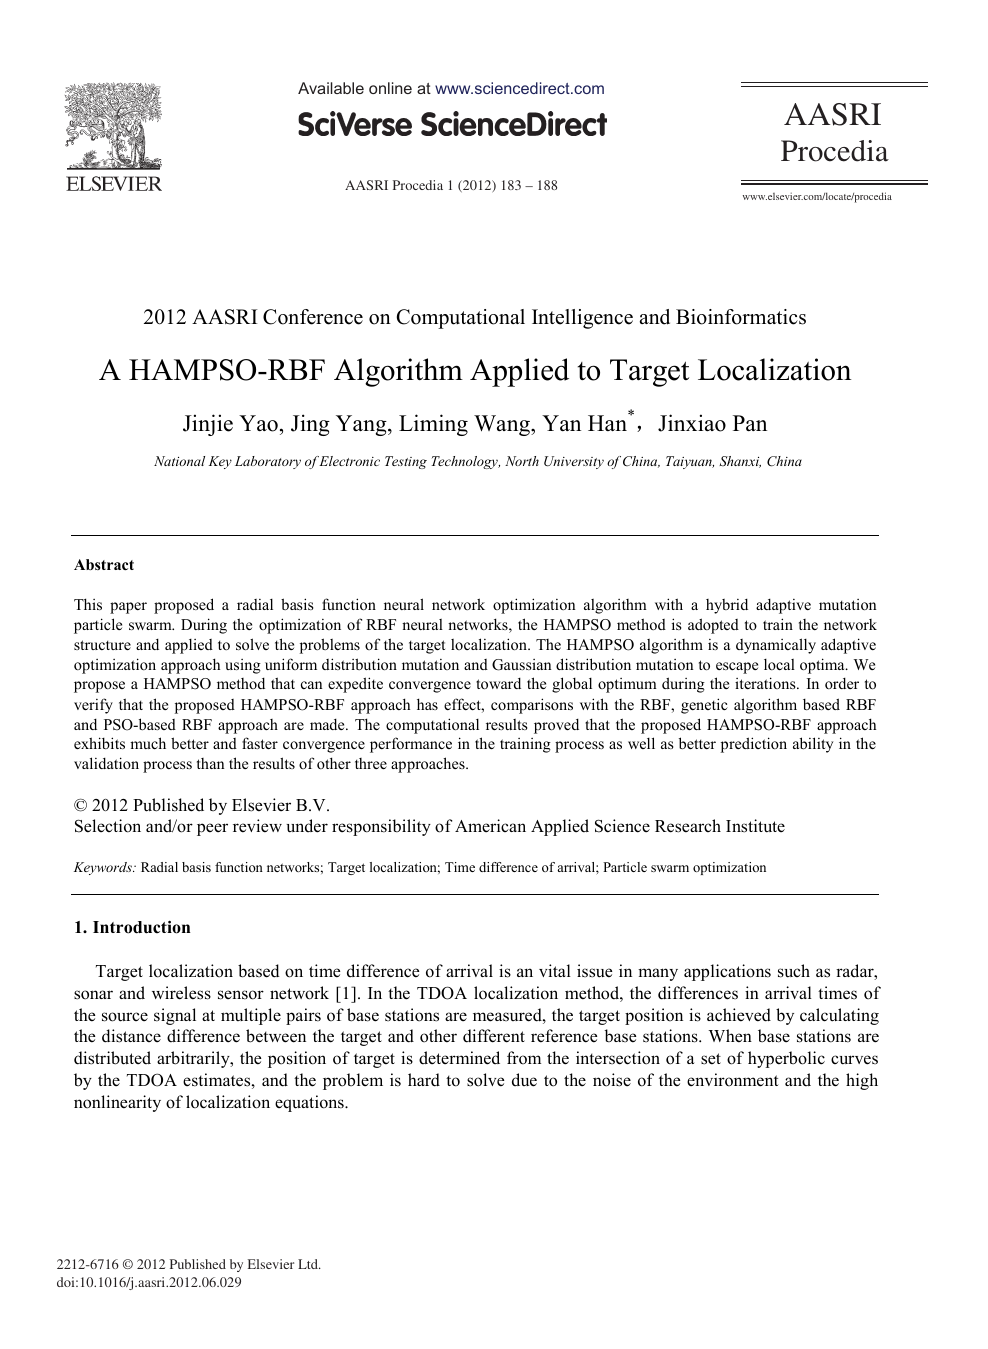 A HAMPSO-RBF Algorithm Applied to Target Localization